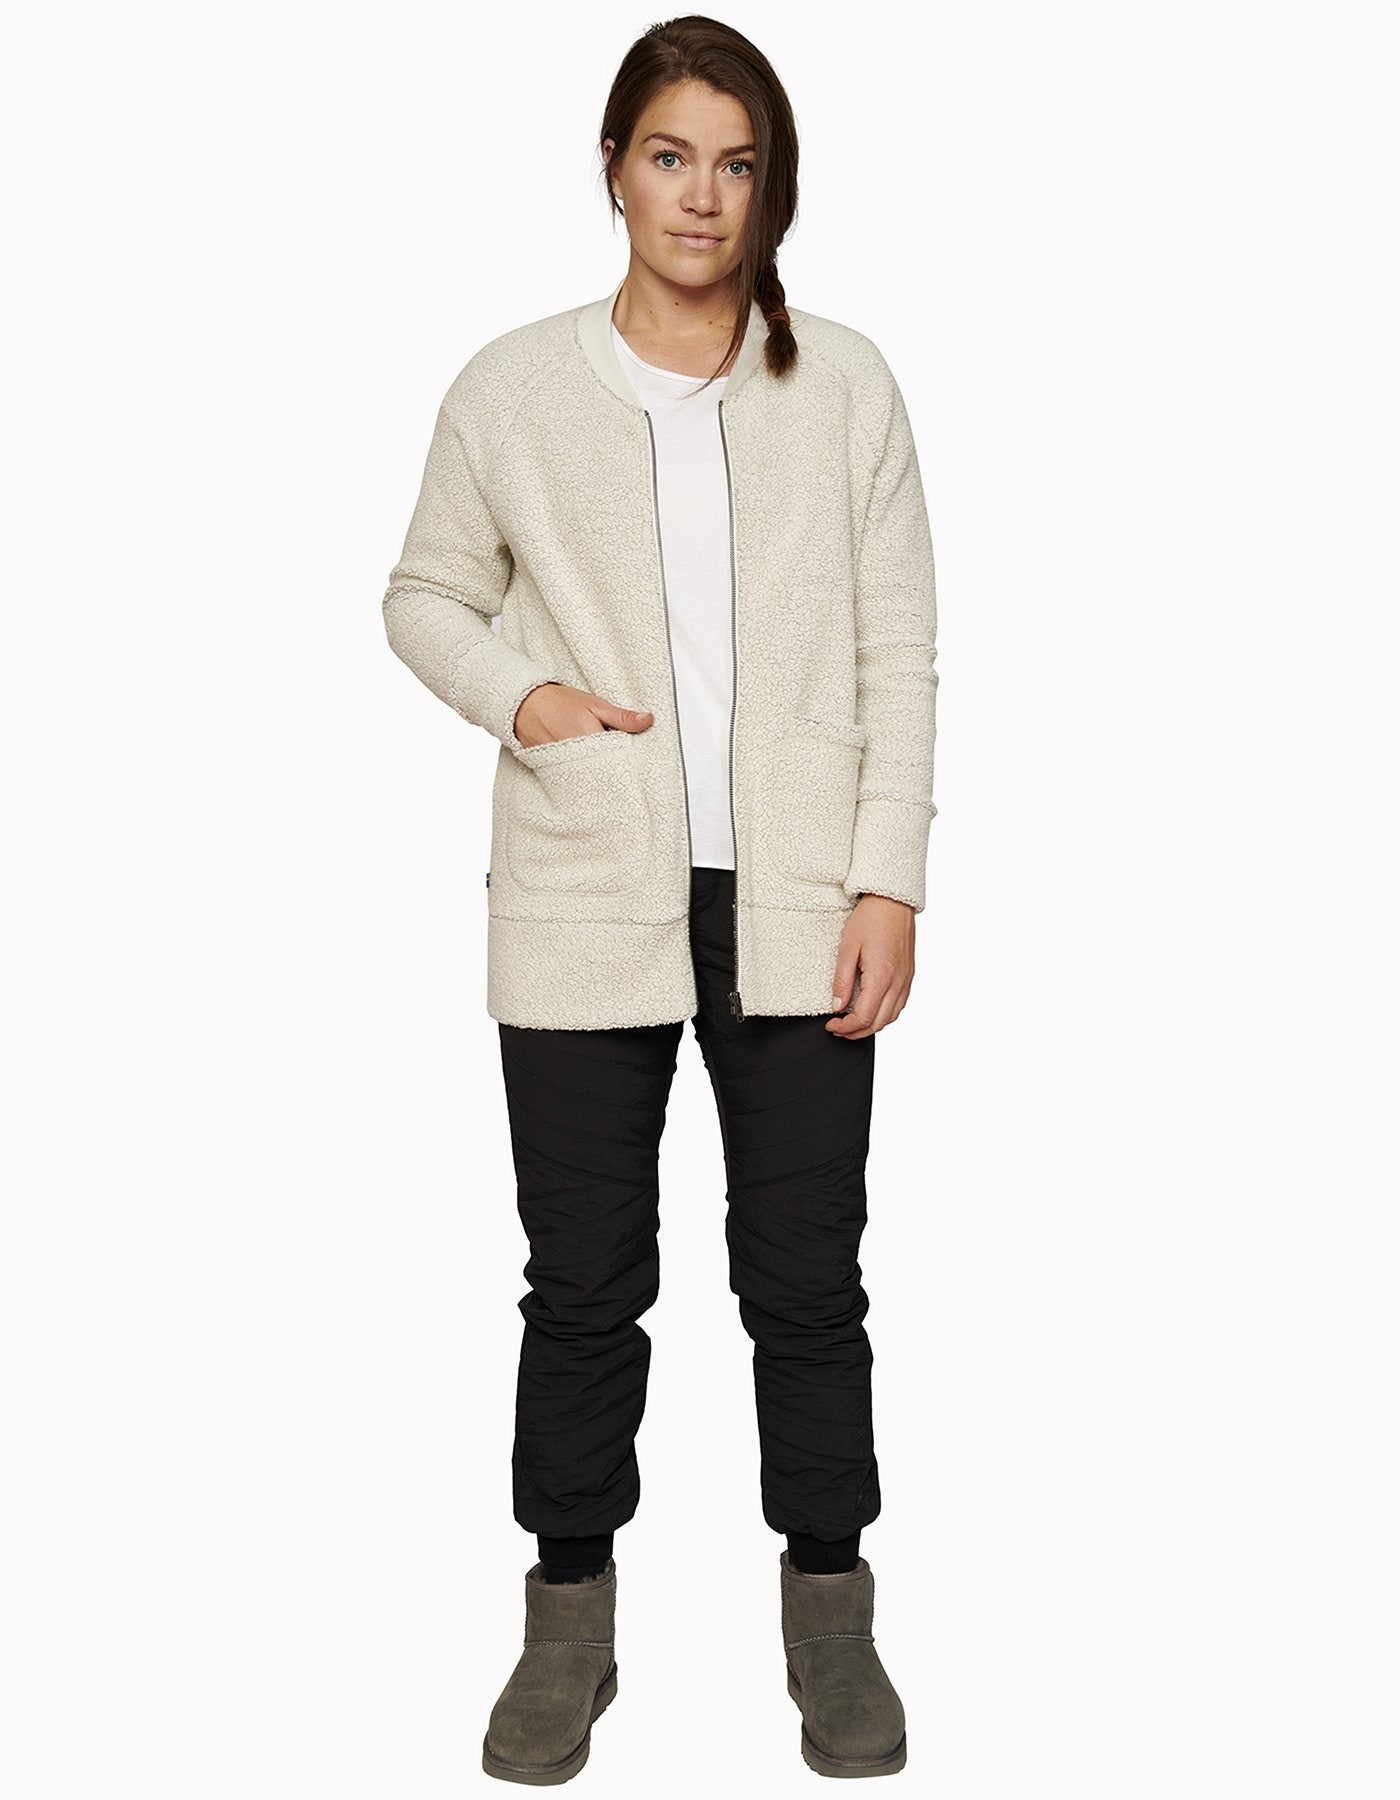 Varg - W's Gudhjem Wool Cardigan - Off White - Recycled Wool - Weekendbee - sustainable sportswear